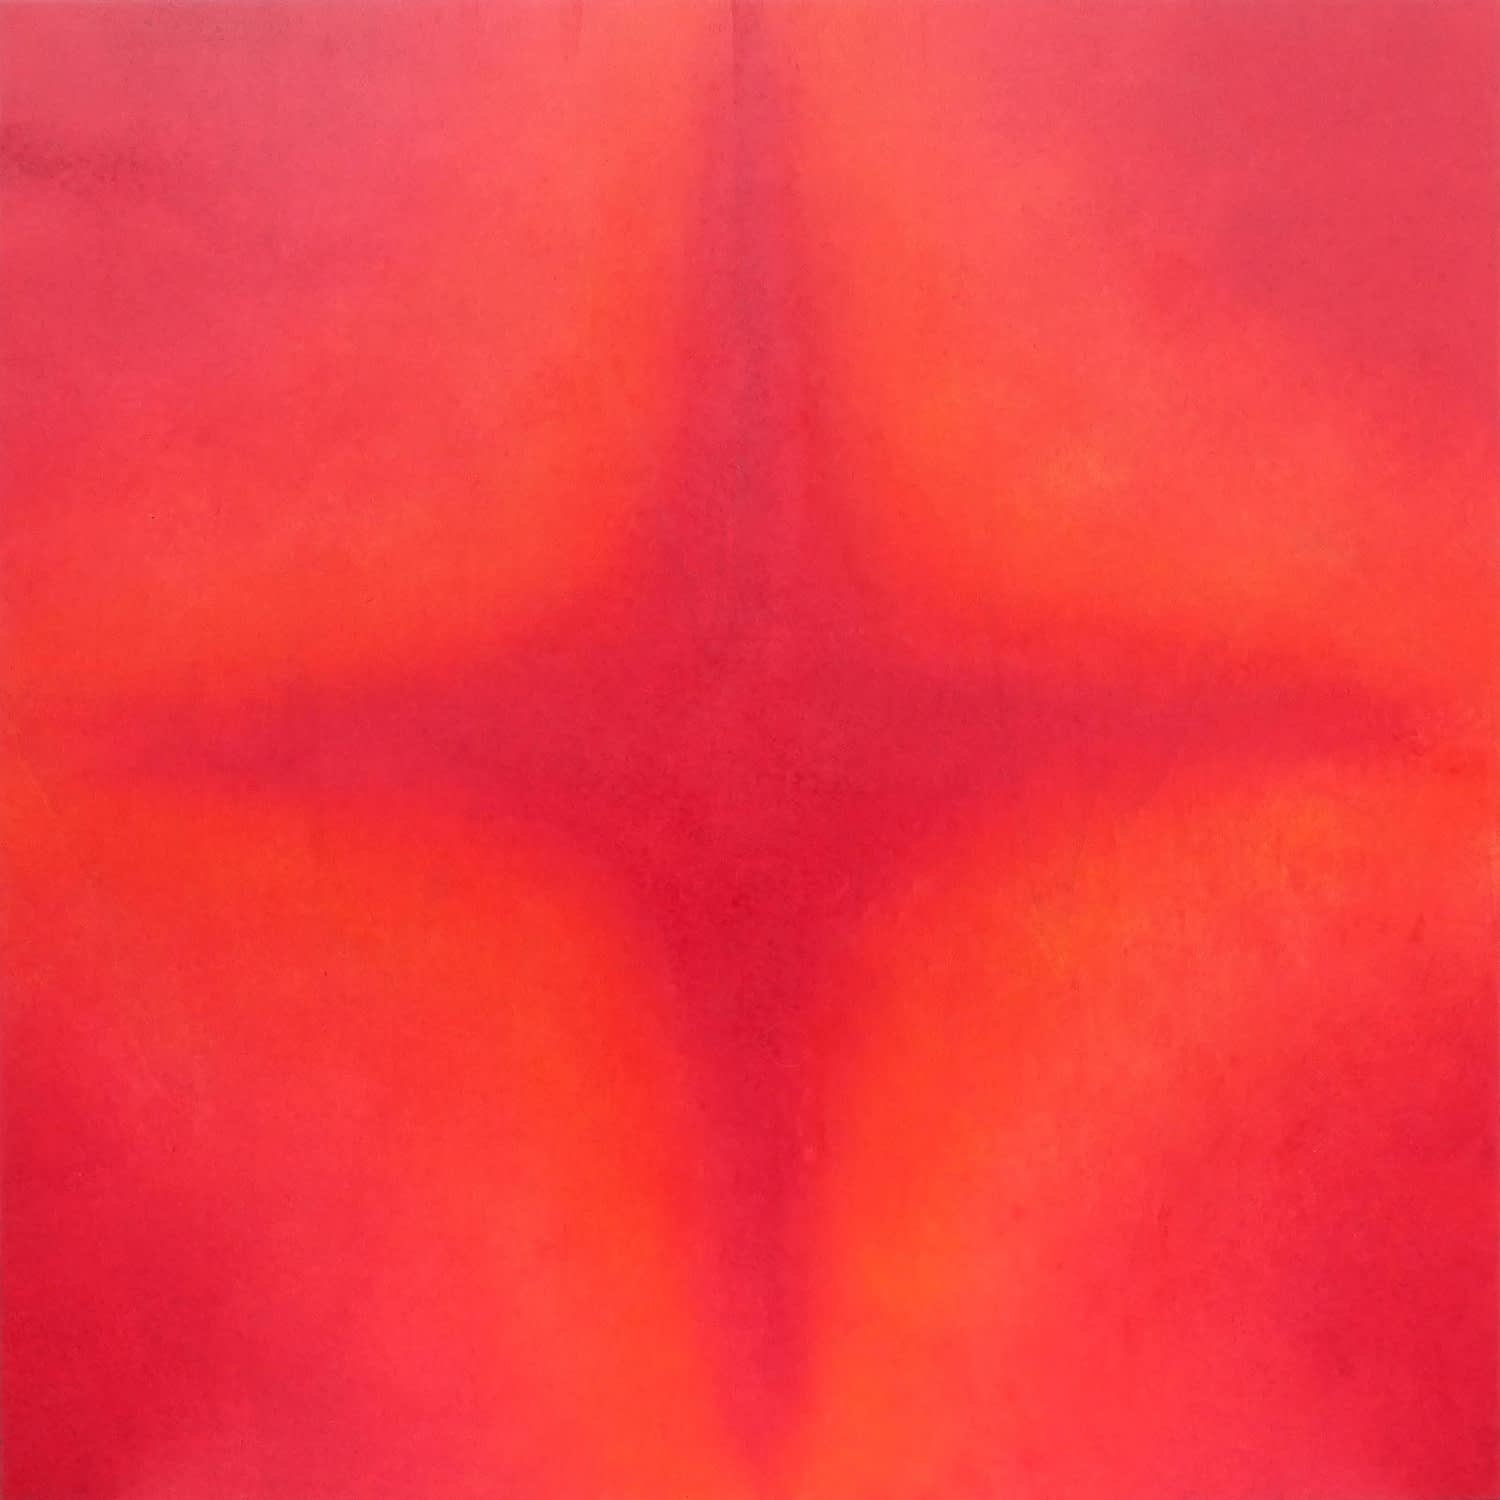 cross-kreuz | 2020 | Oil on Canvas | 80 x 80